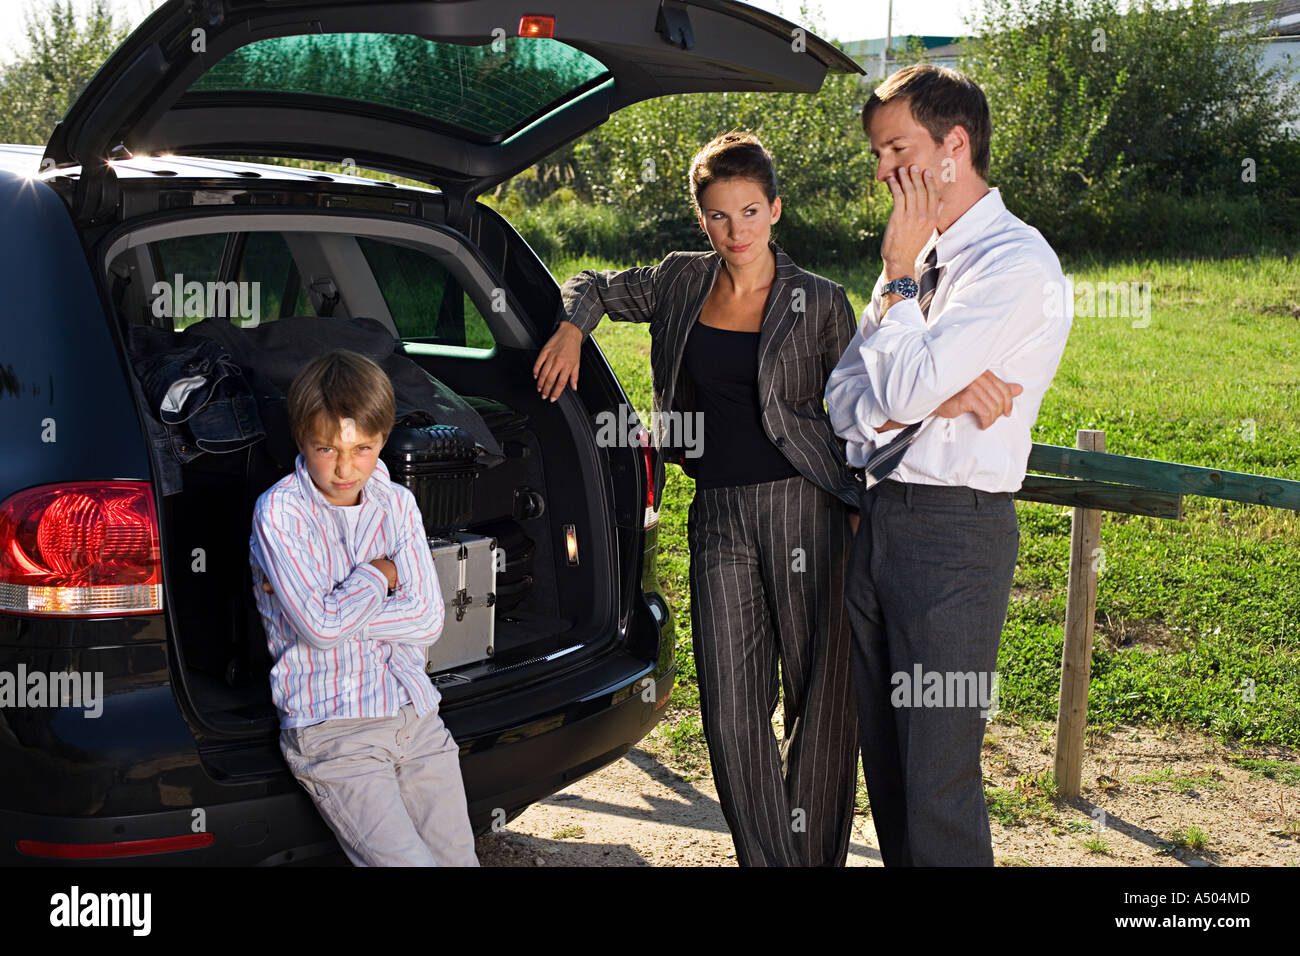 Family with broken down car - Stock Image